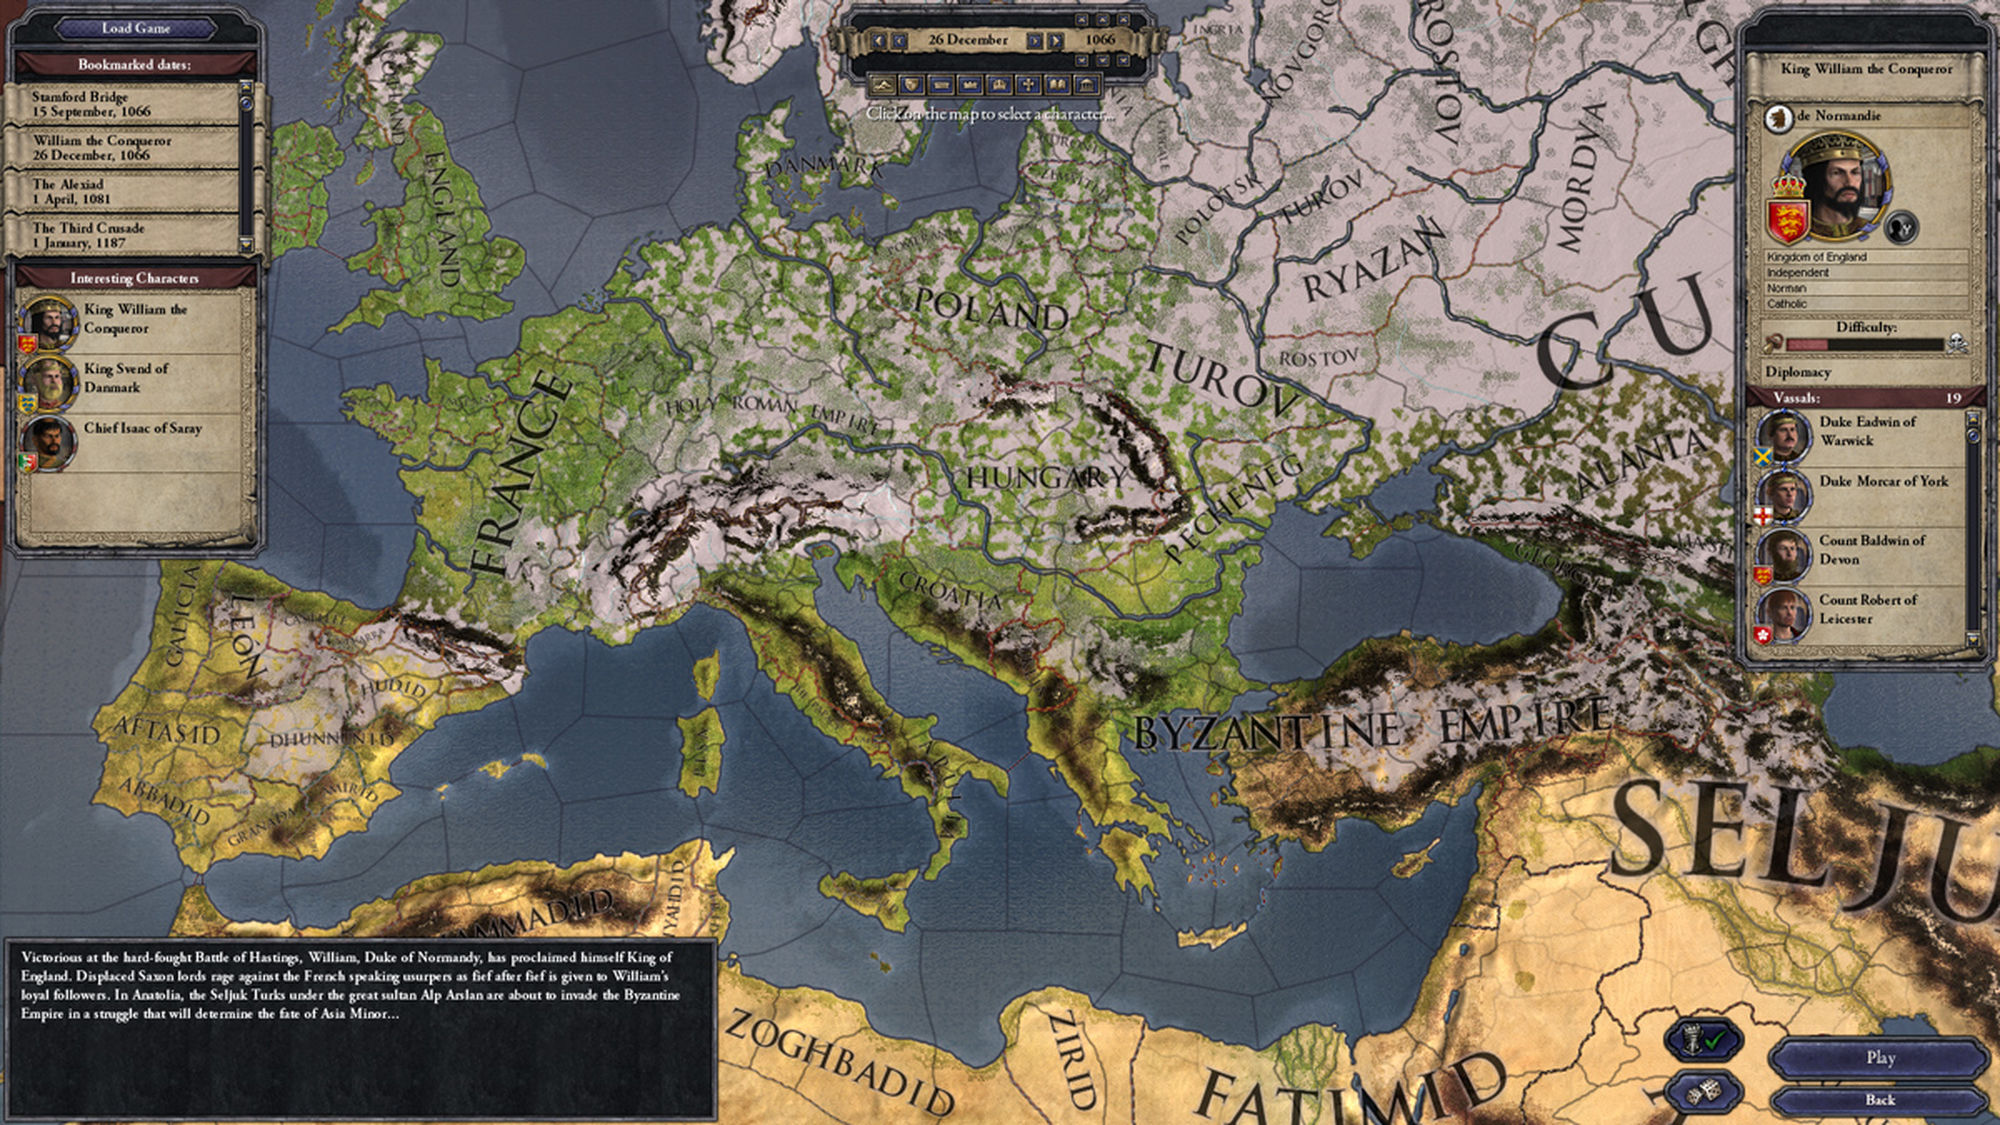 joc Crusader Kings 2 gratis